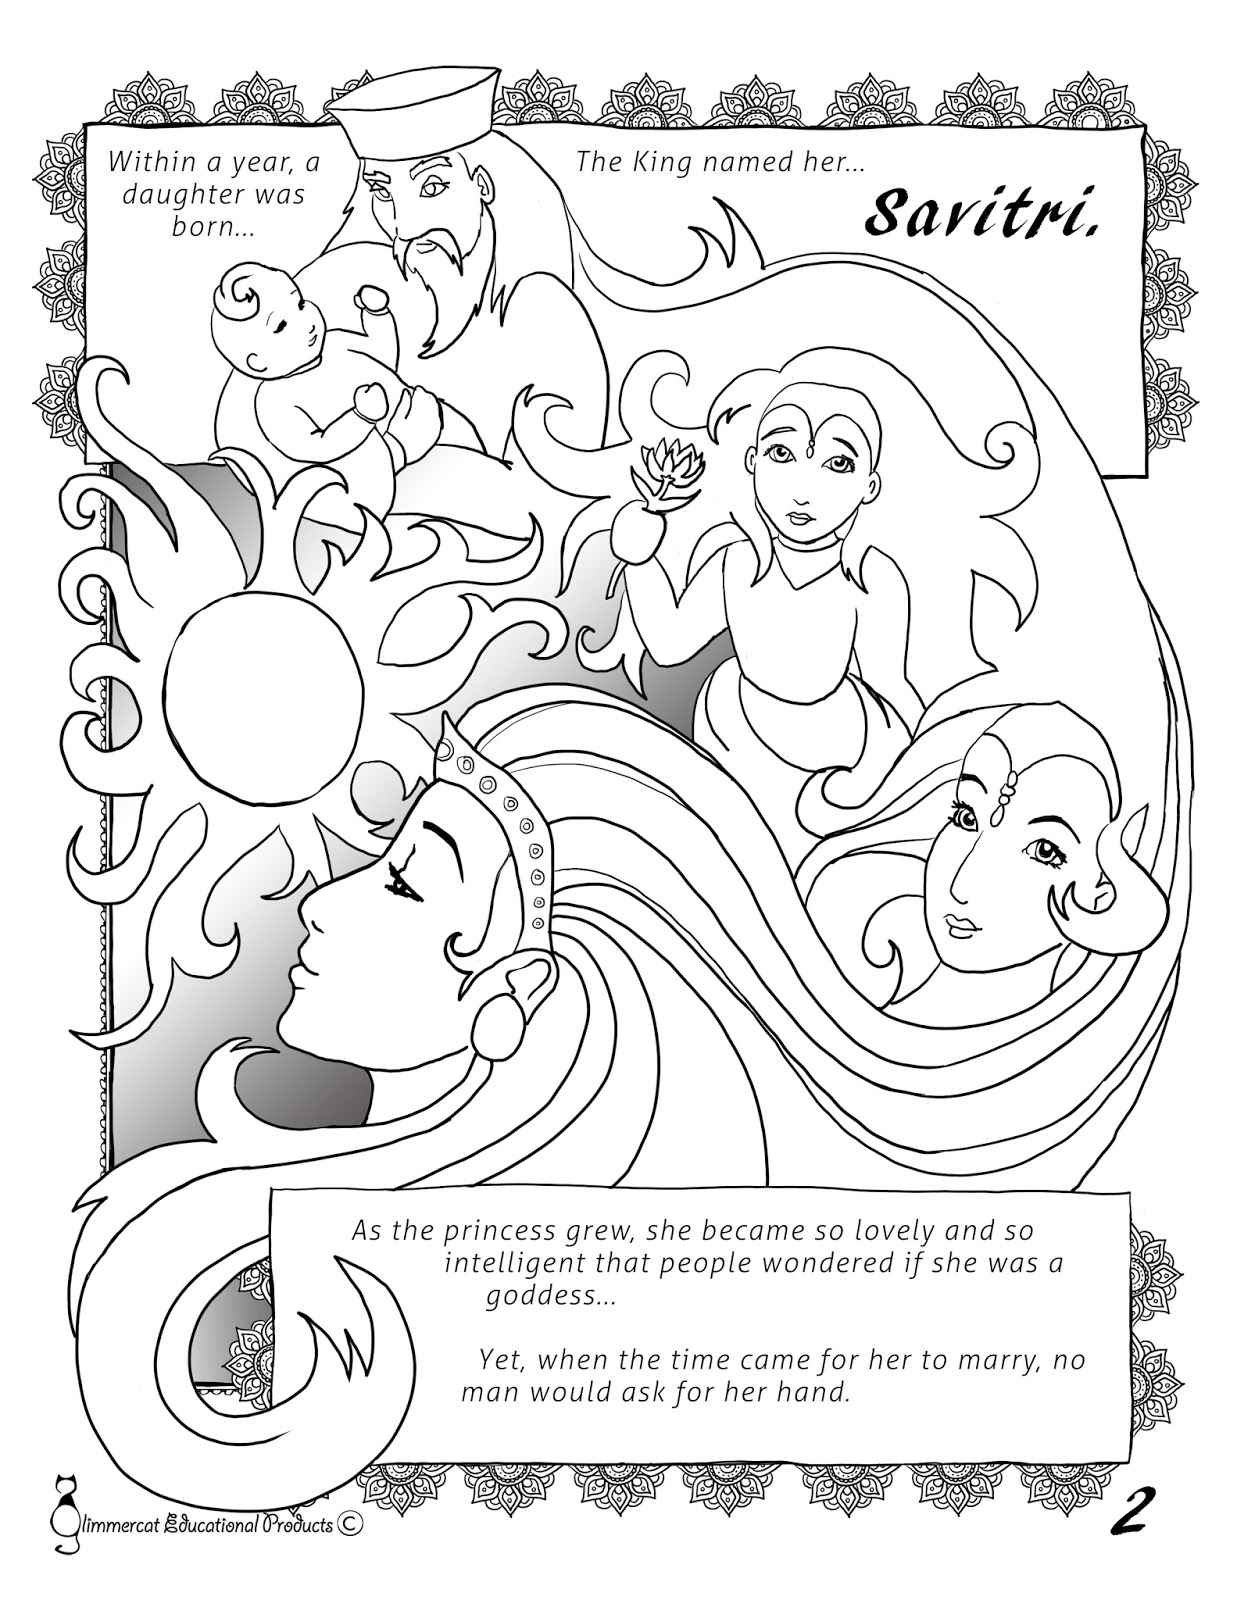 ancient india coloring pages - glimmercat education our free indus river valley mini